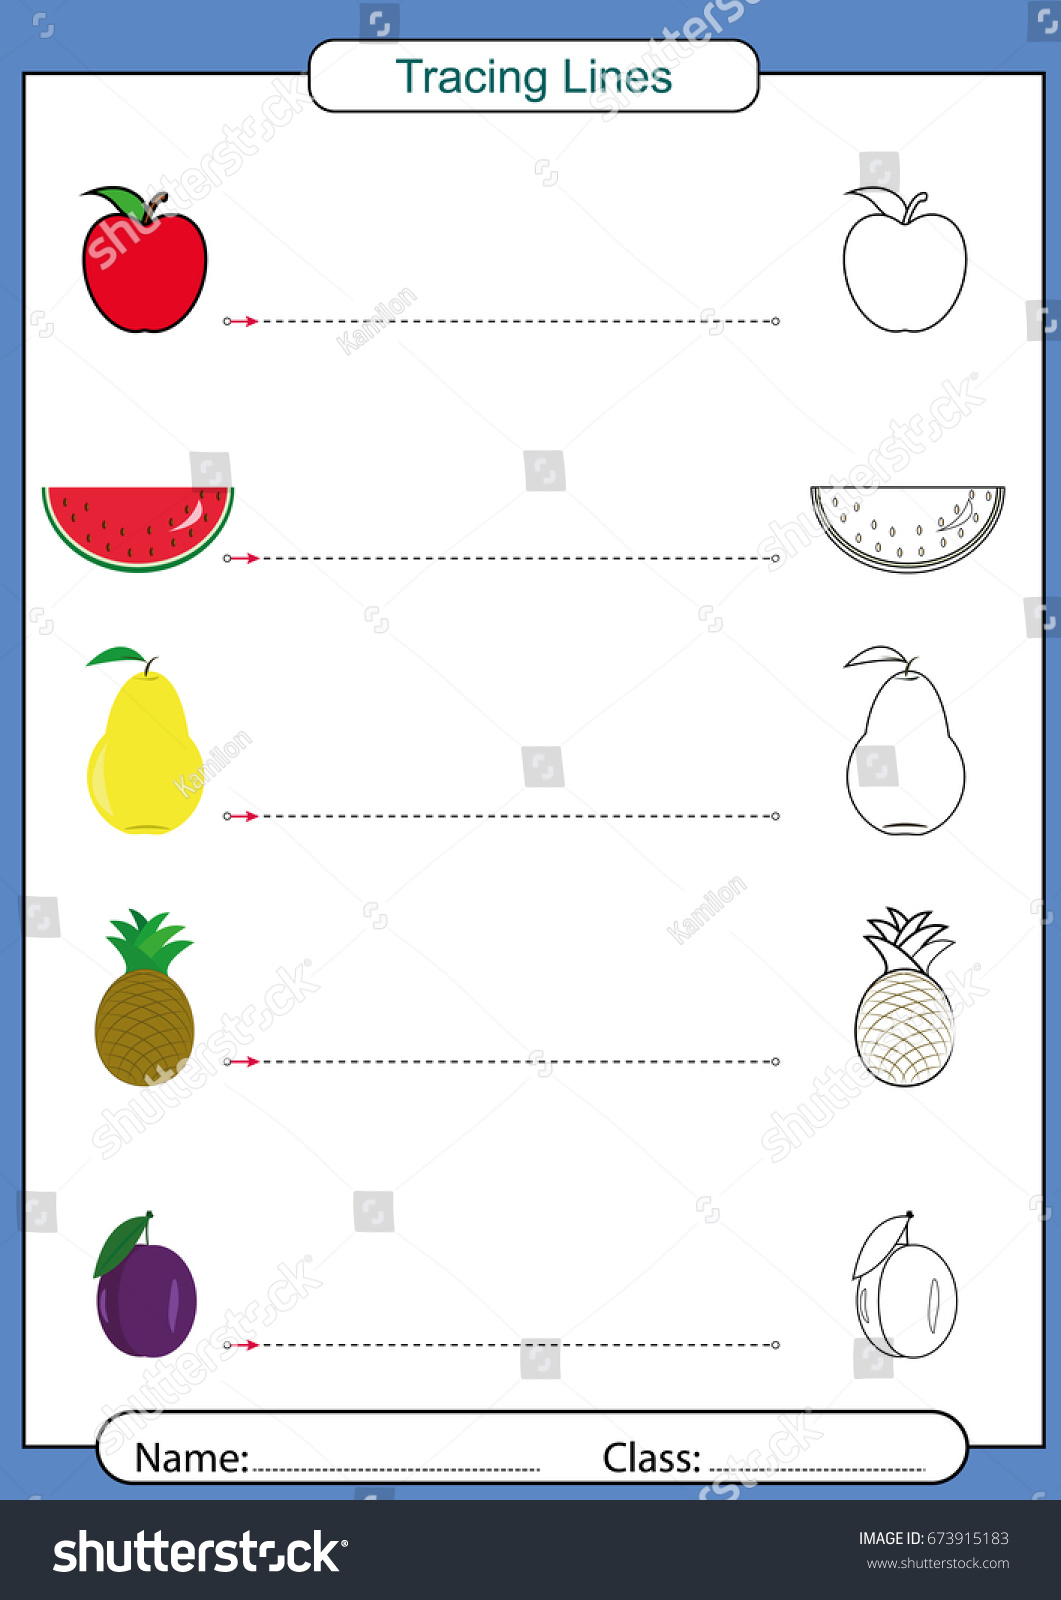 Pencil Control Working Pages Children Tracing Stock Vector